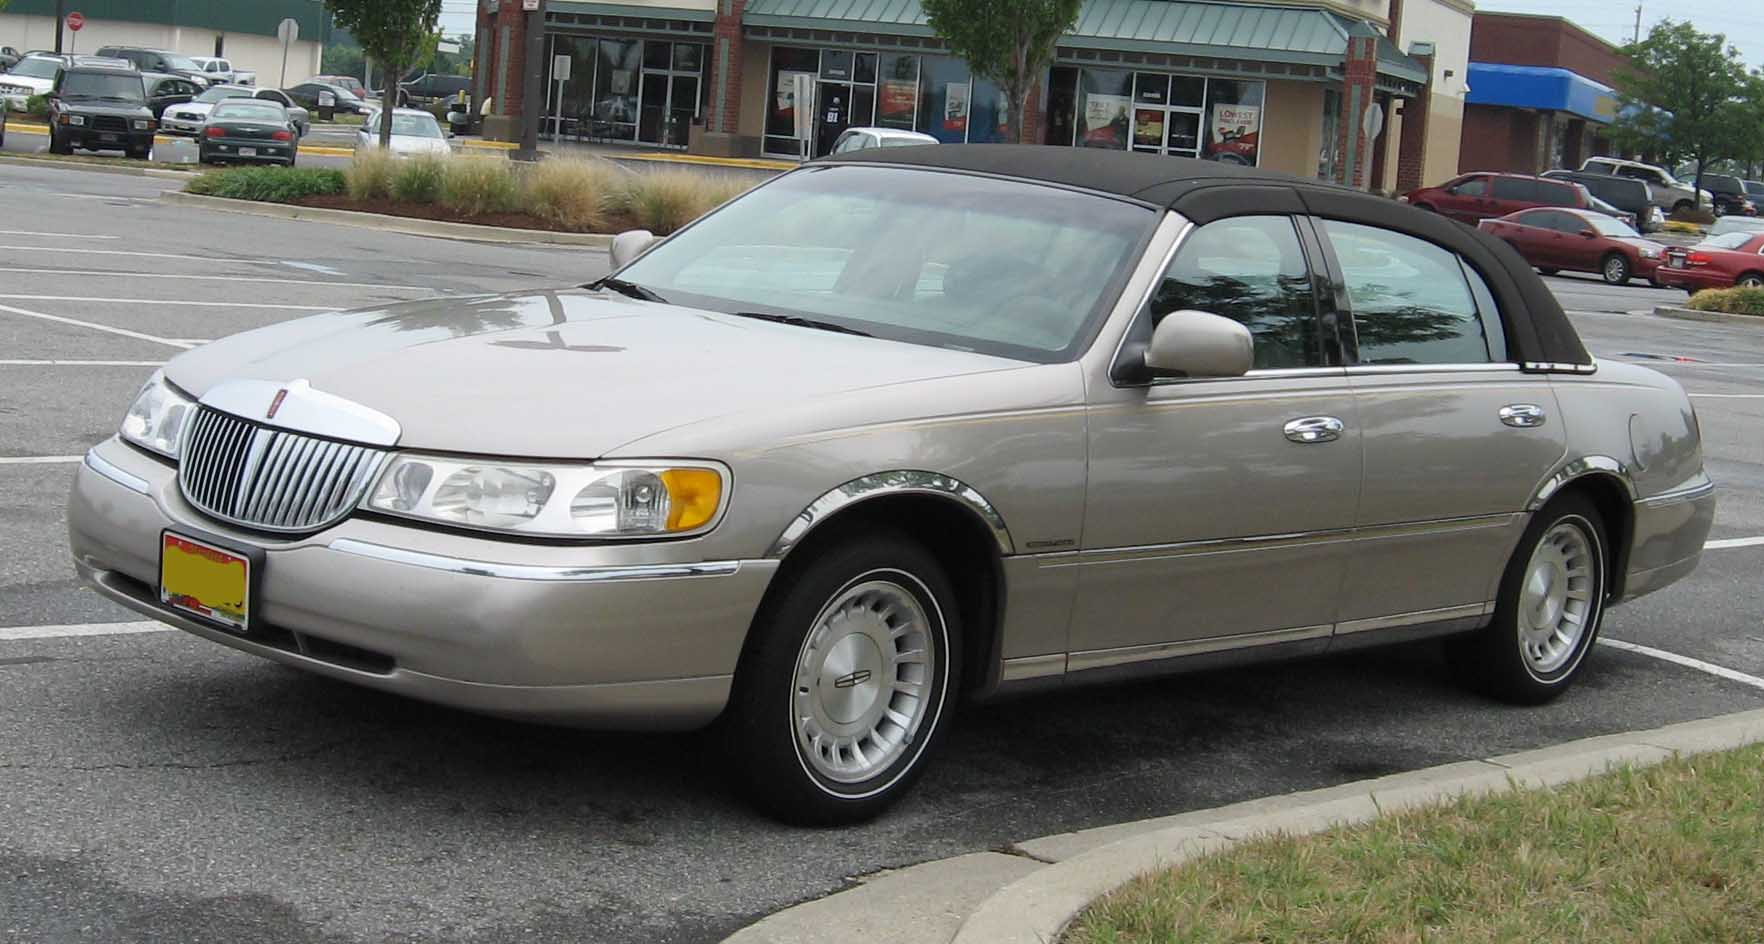 hight resolution of file 98 02 lincoln town car jpg